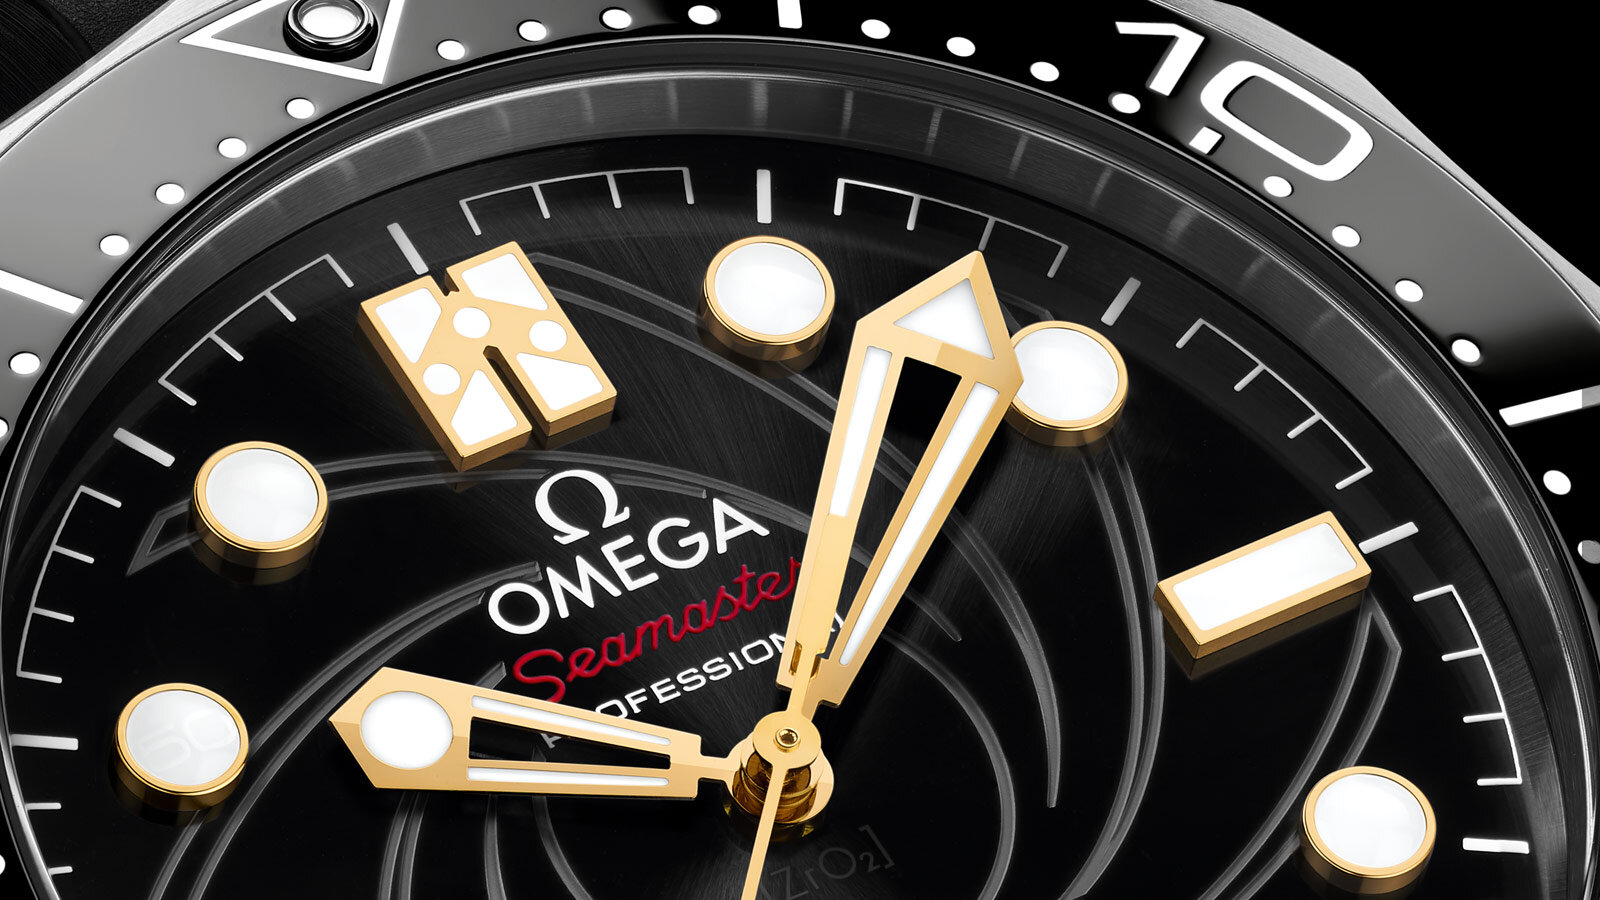 omega-seamaster-diver-300m-omega-co-axial-master-chronometer-42-mm-21022422001004-gallery-4-large.jpg